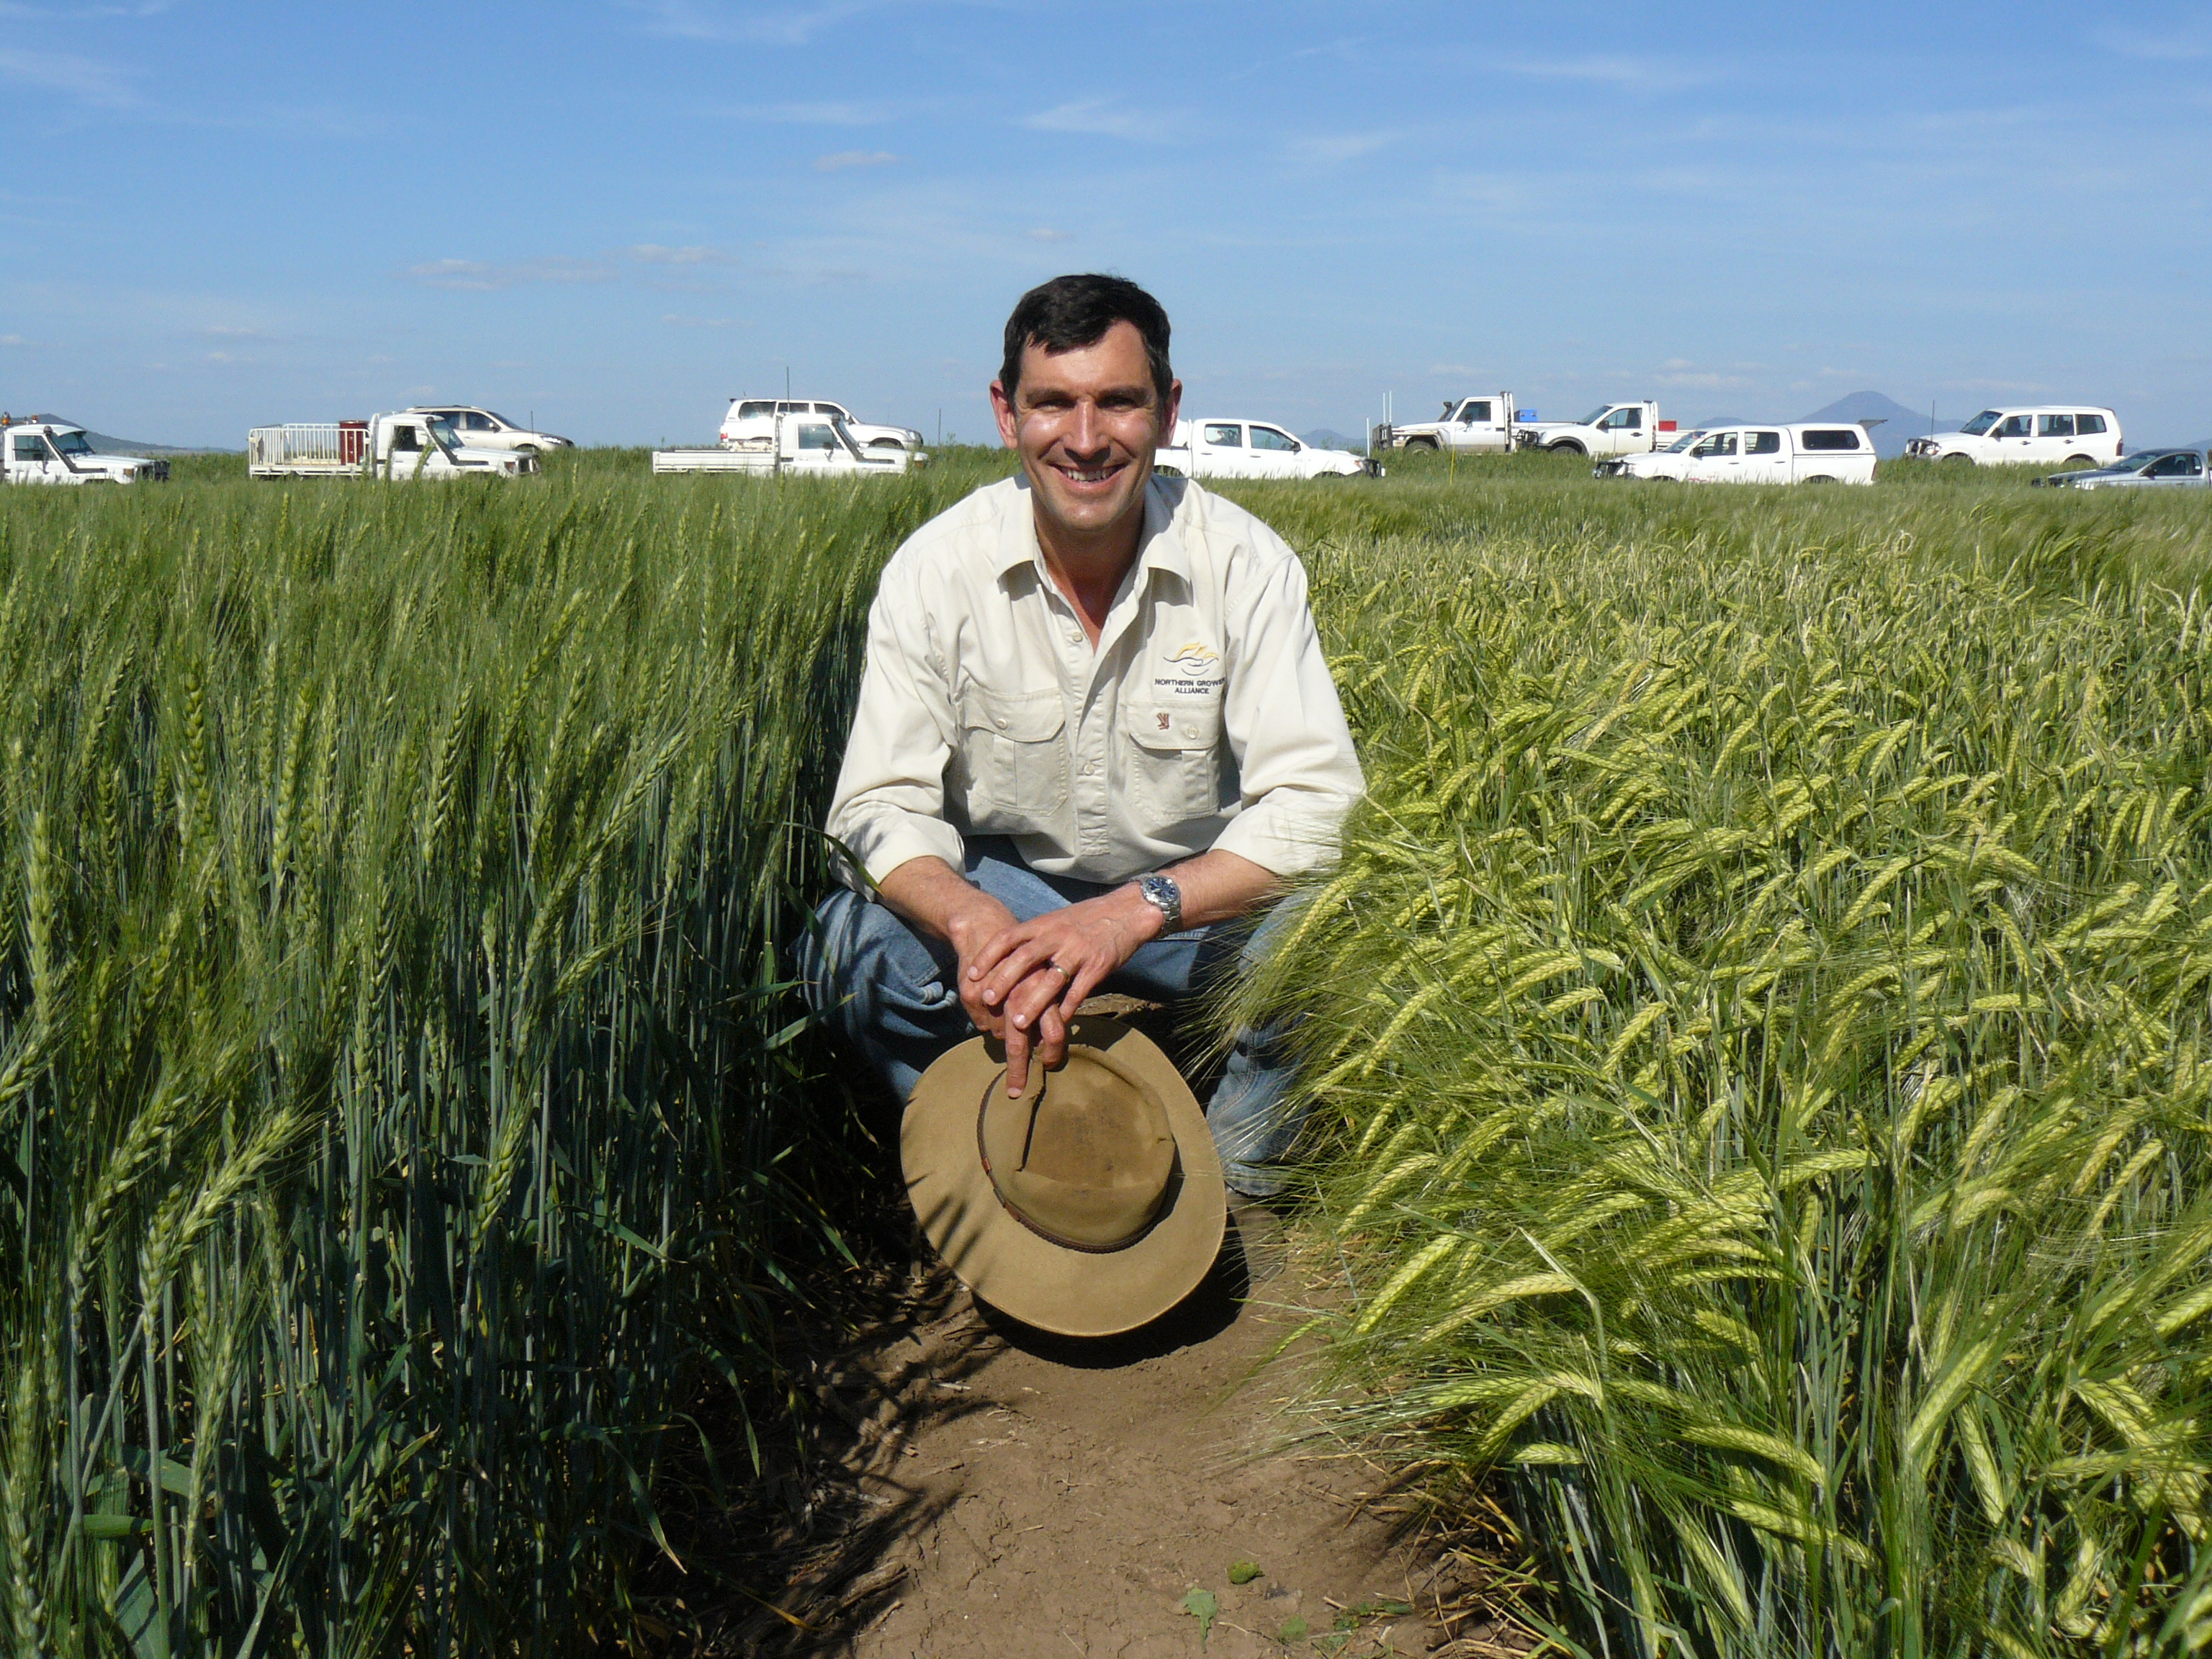 Image of Richard Daniel, Chief executive officer of the GRDC-funded grower group Northern Grower Alliance.